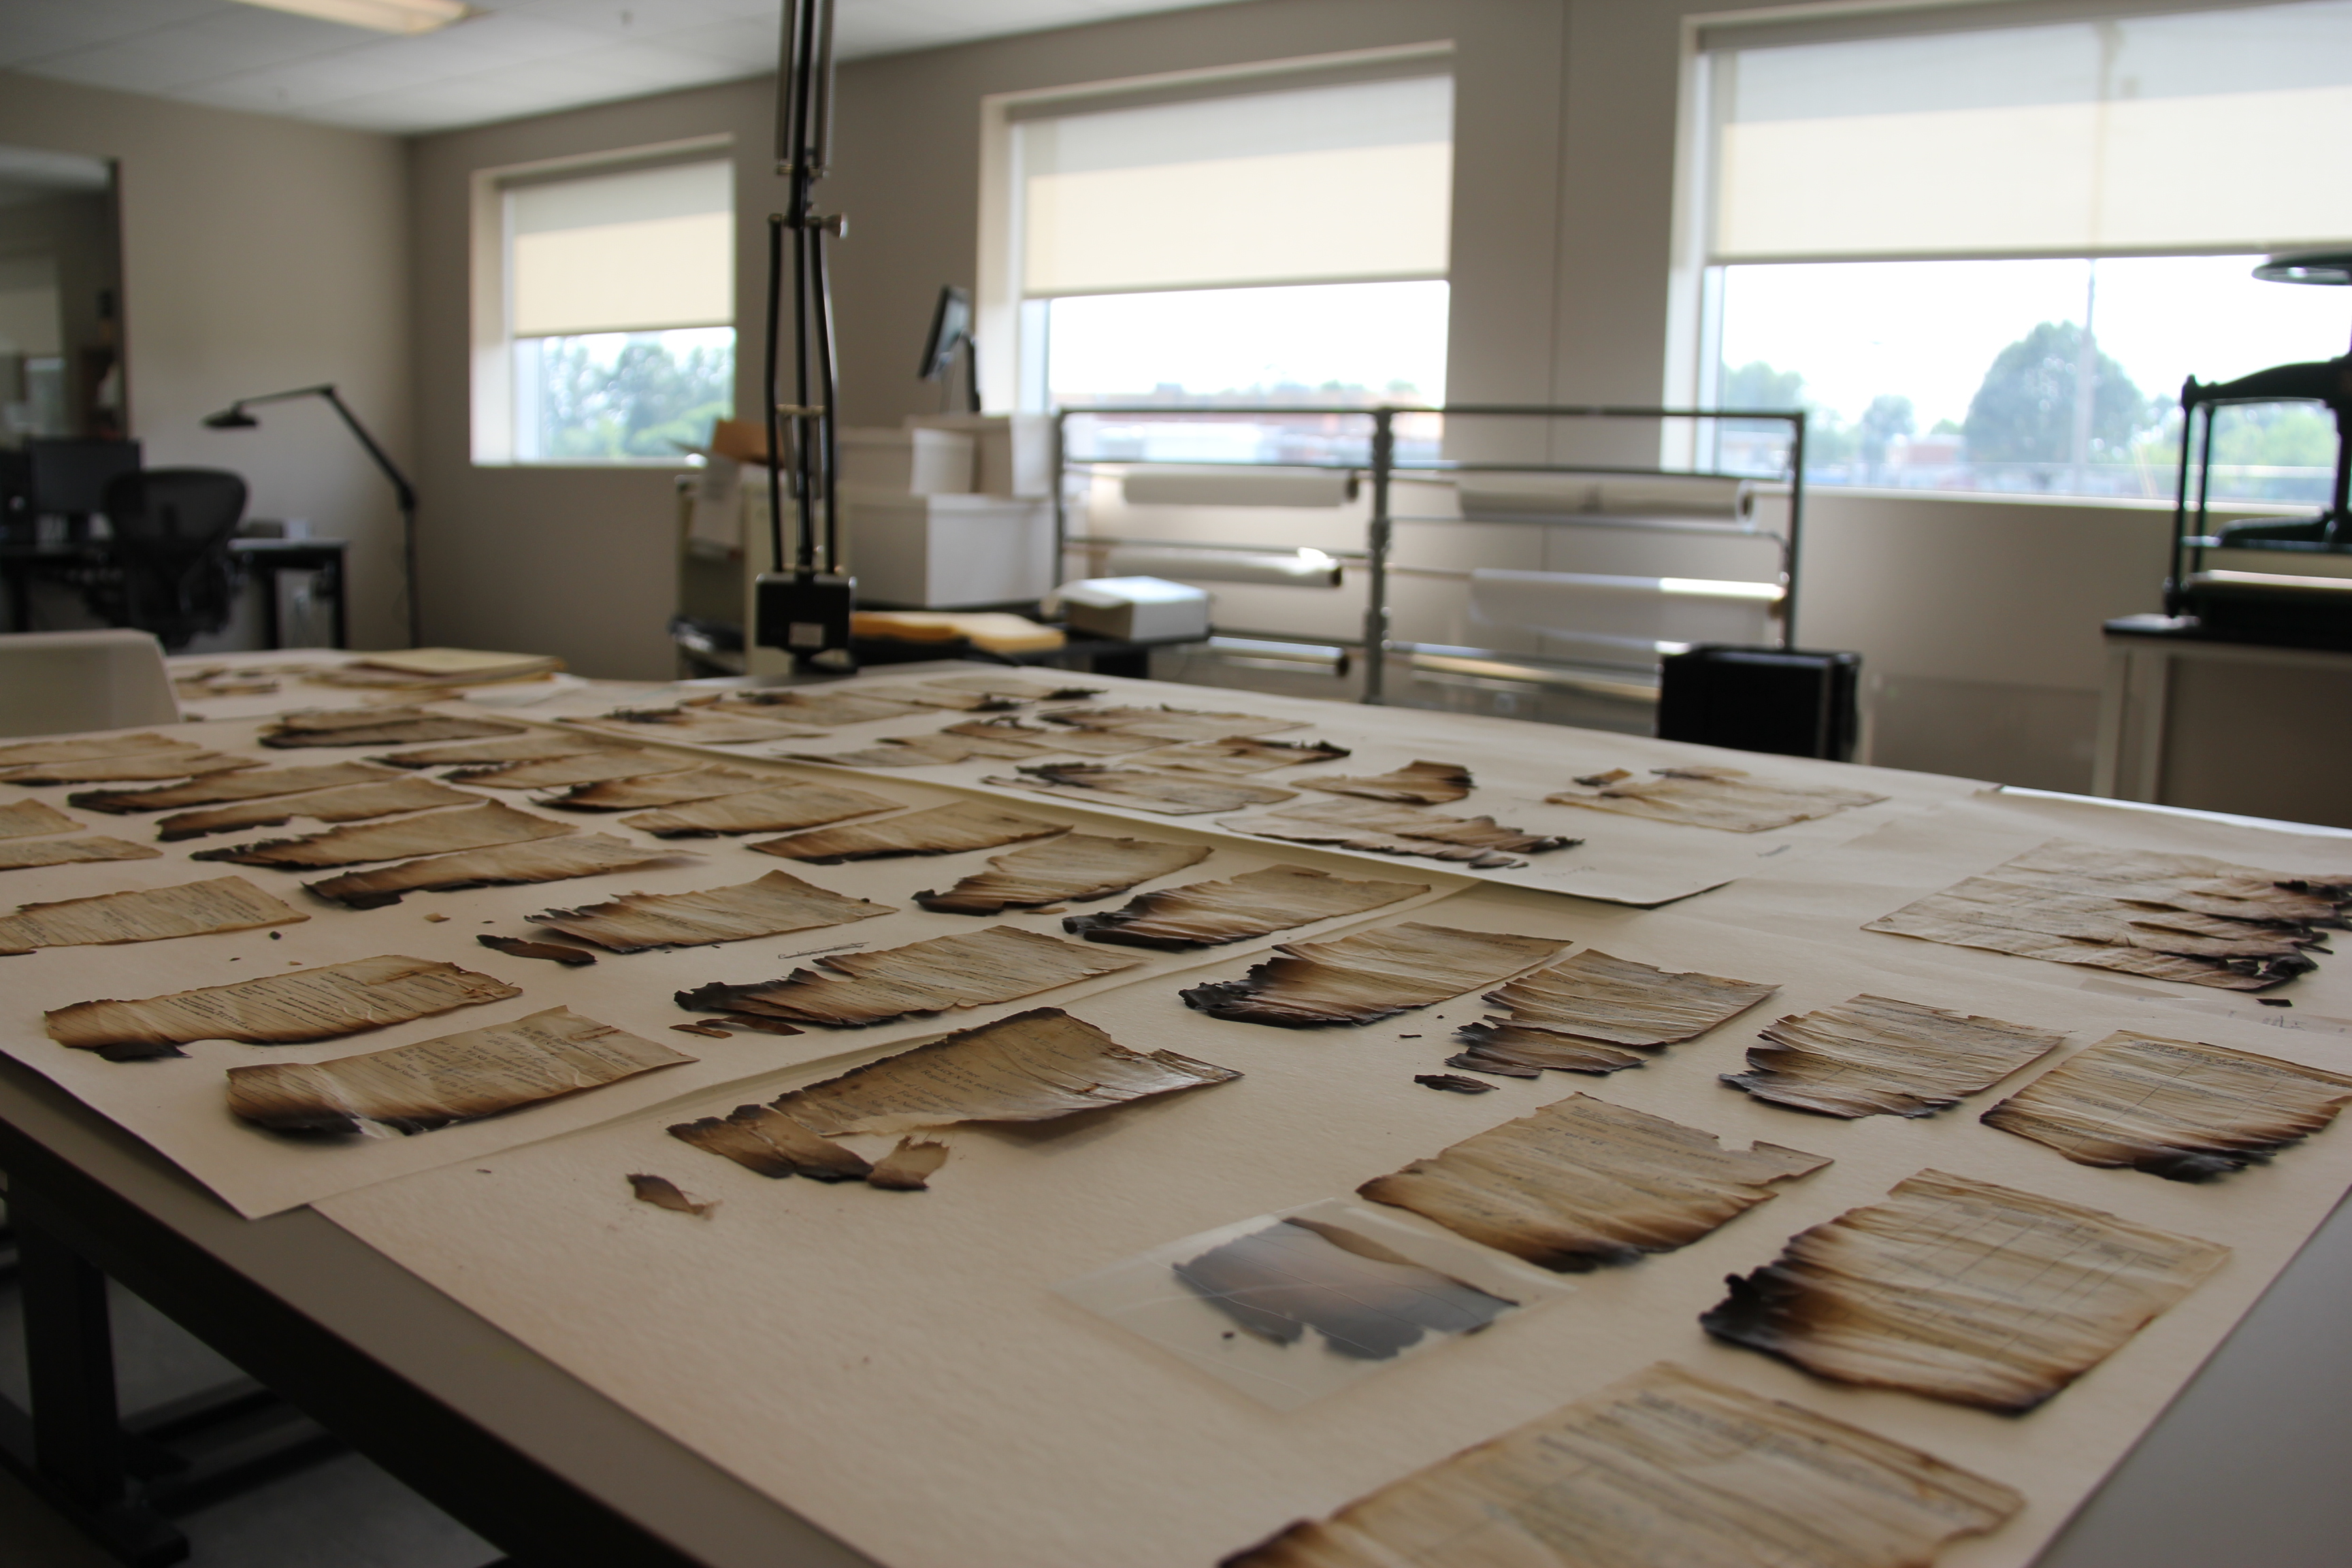 A record in the Paper Lab currently being treated is spread out so fragments can be pieced together and mended.